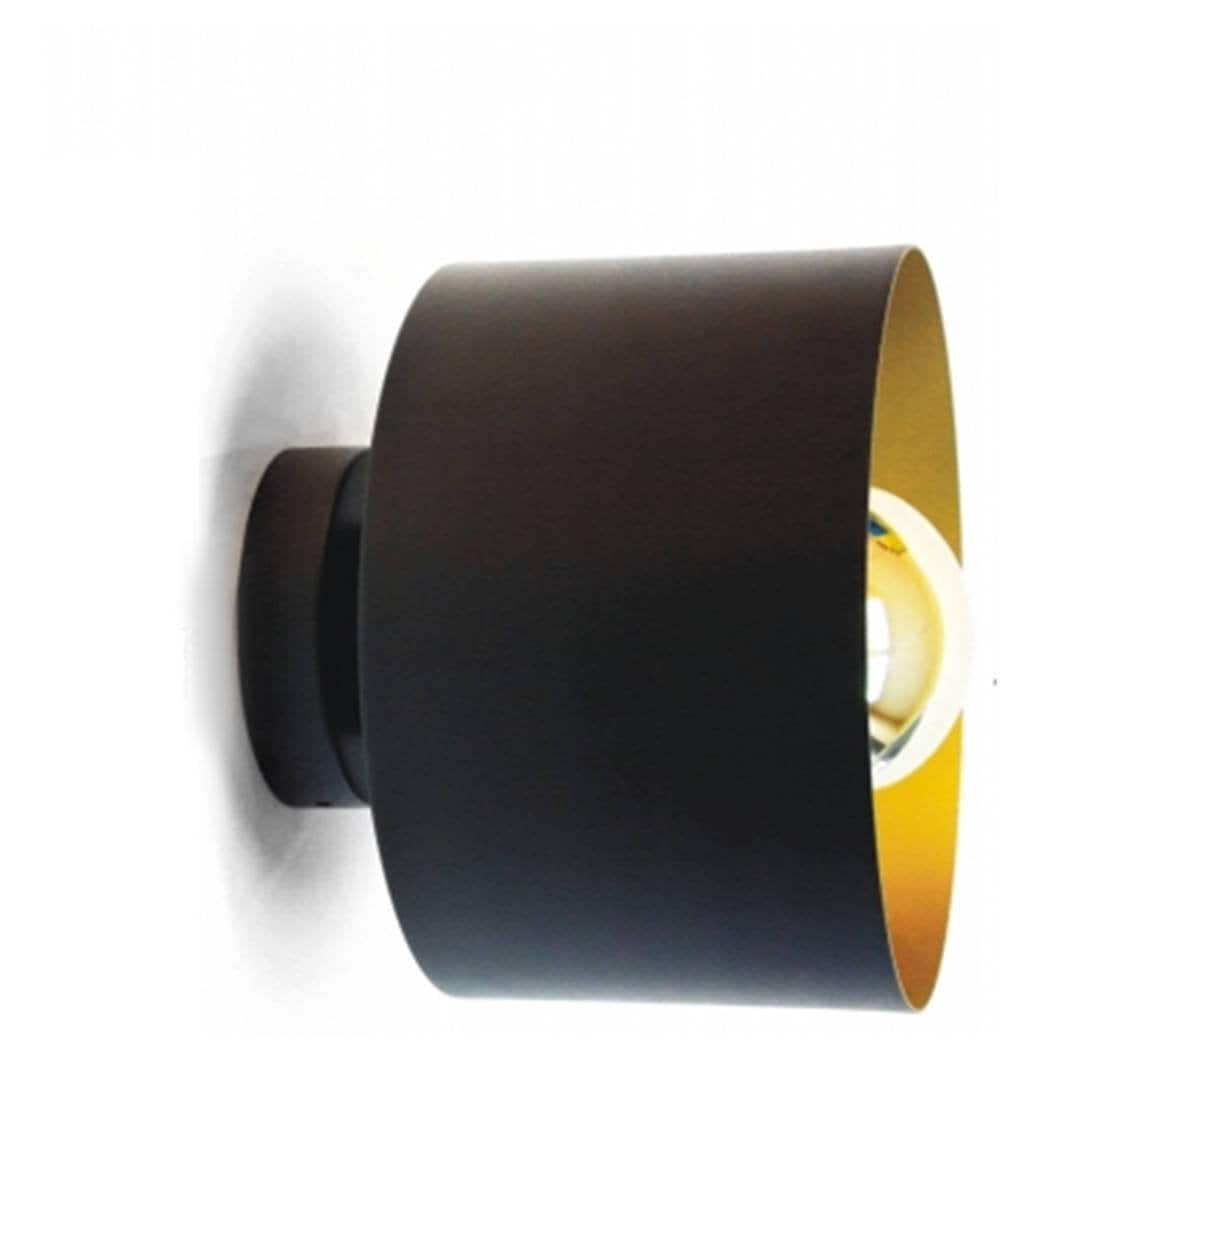 Black Gold Wall Light Fixture Wall Sconces Flush Mount Ceiling